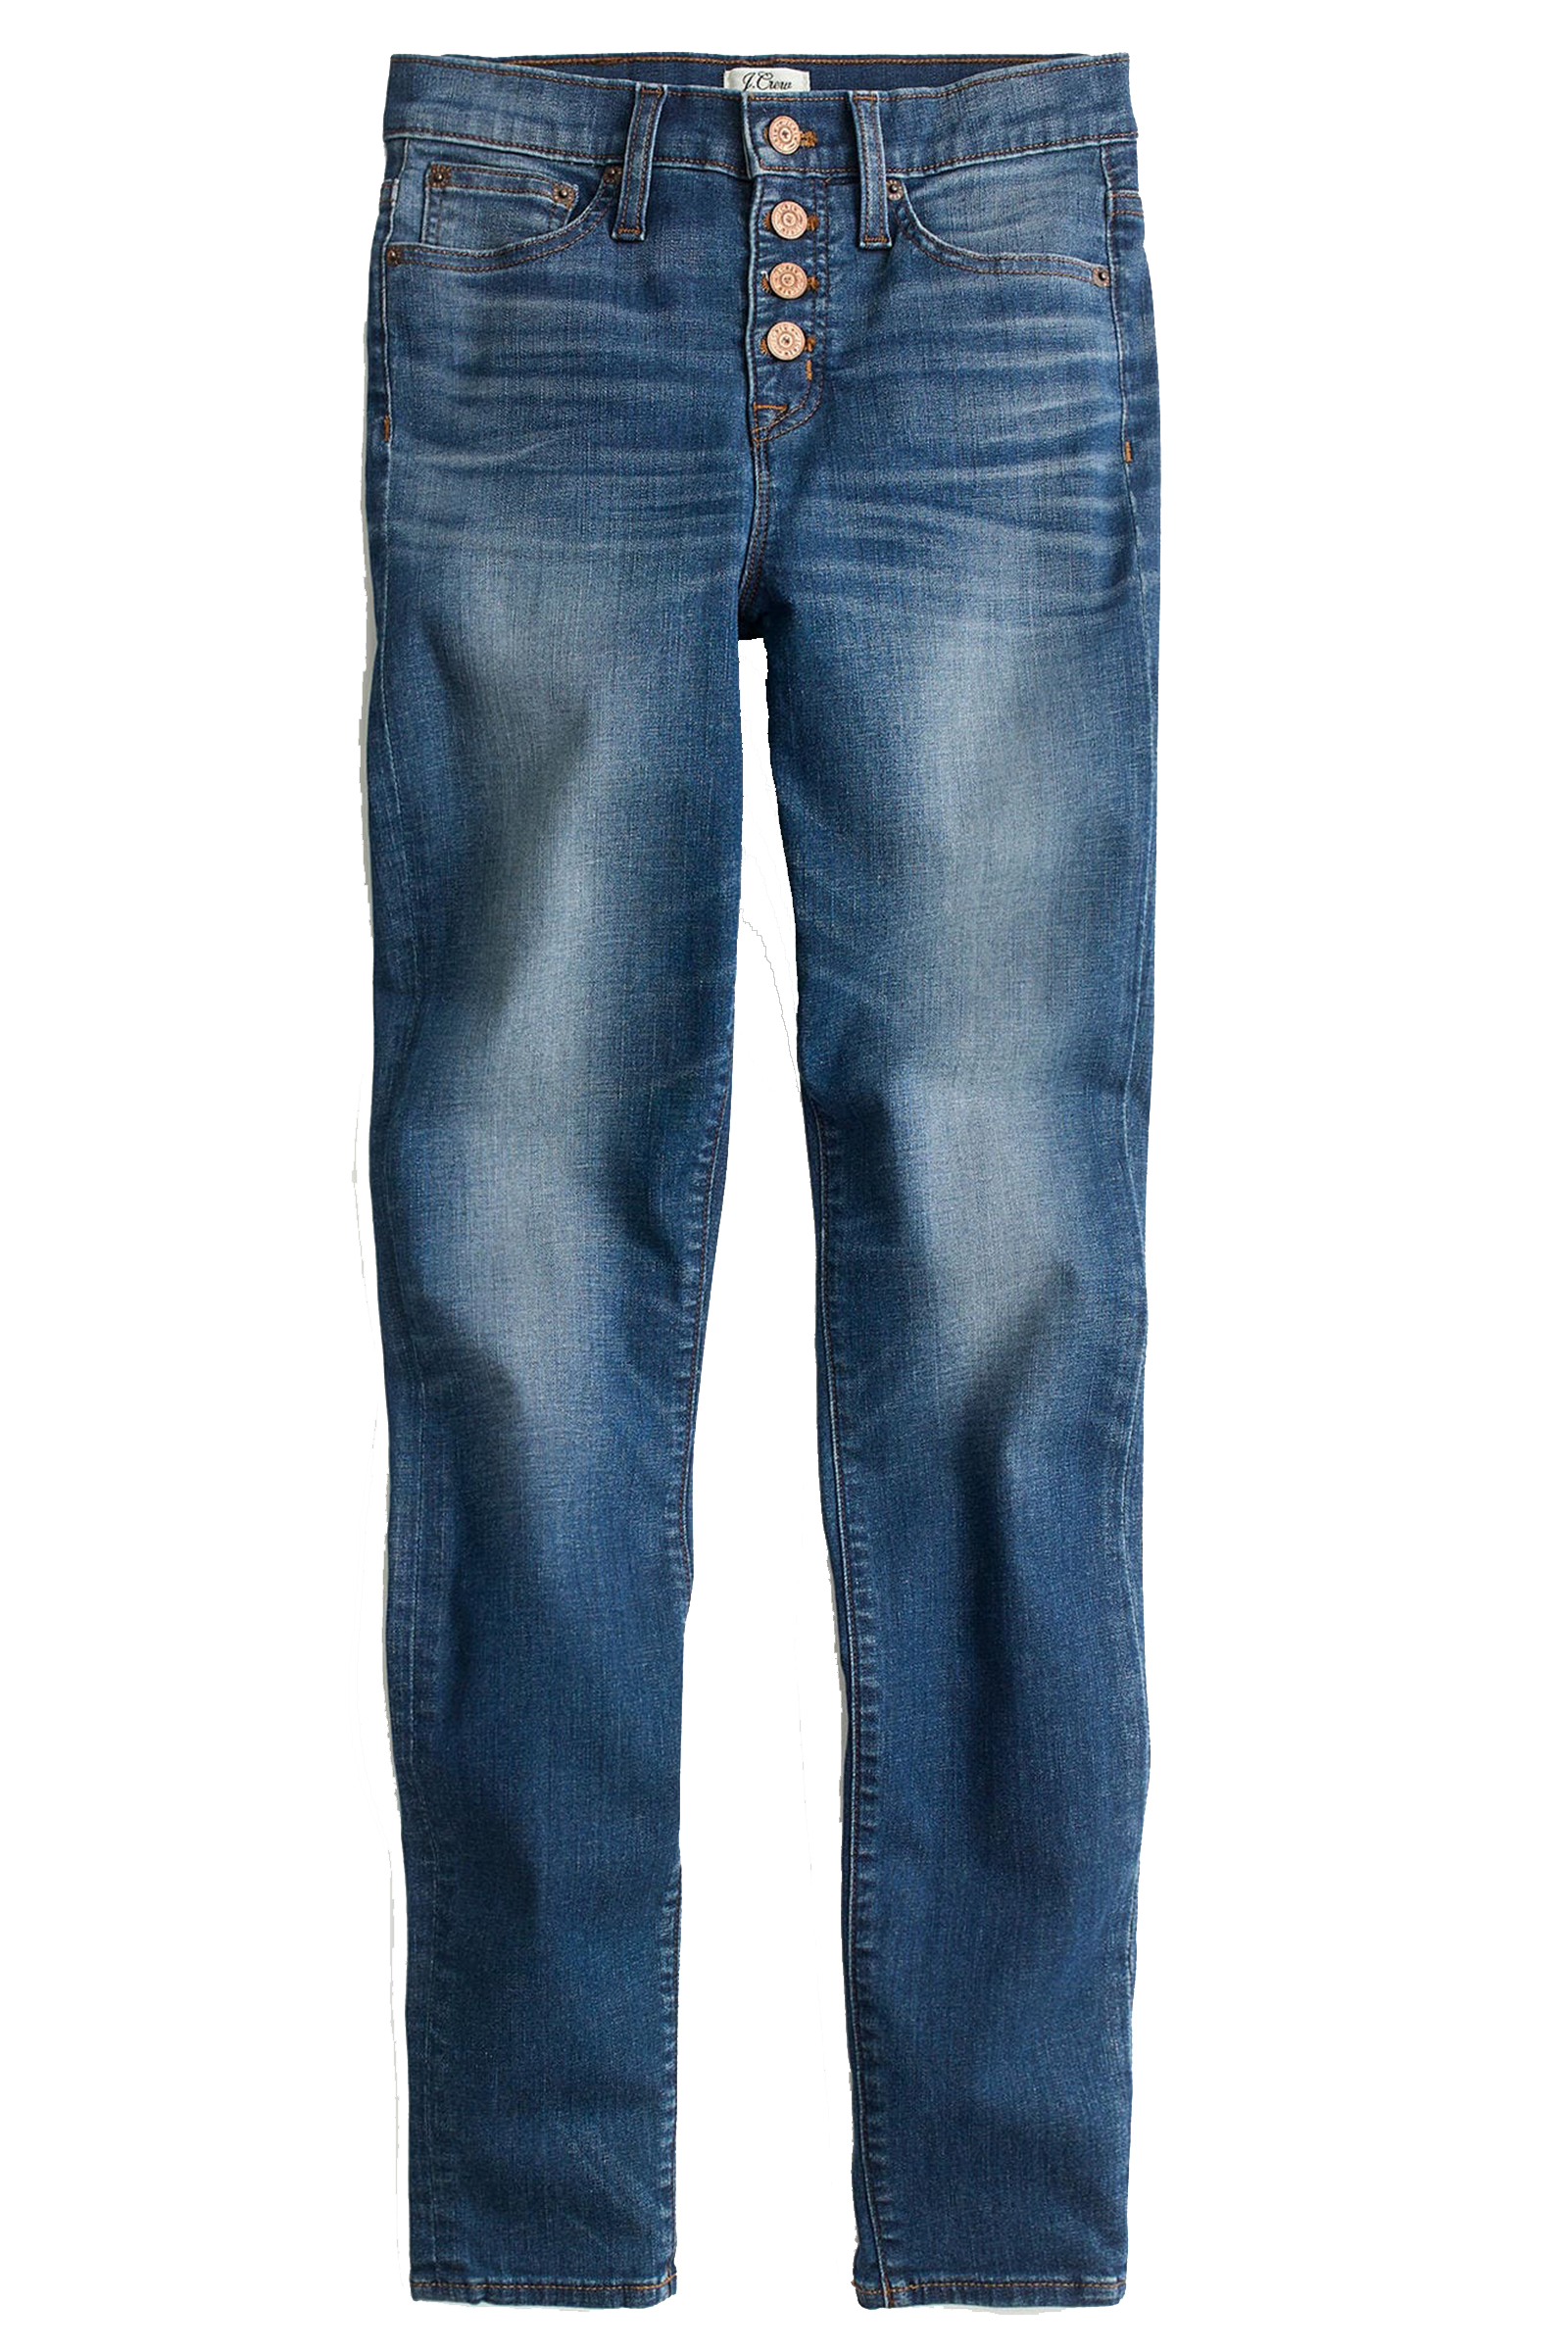 Click to Buy J.Crew Jeans